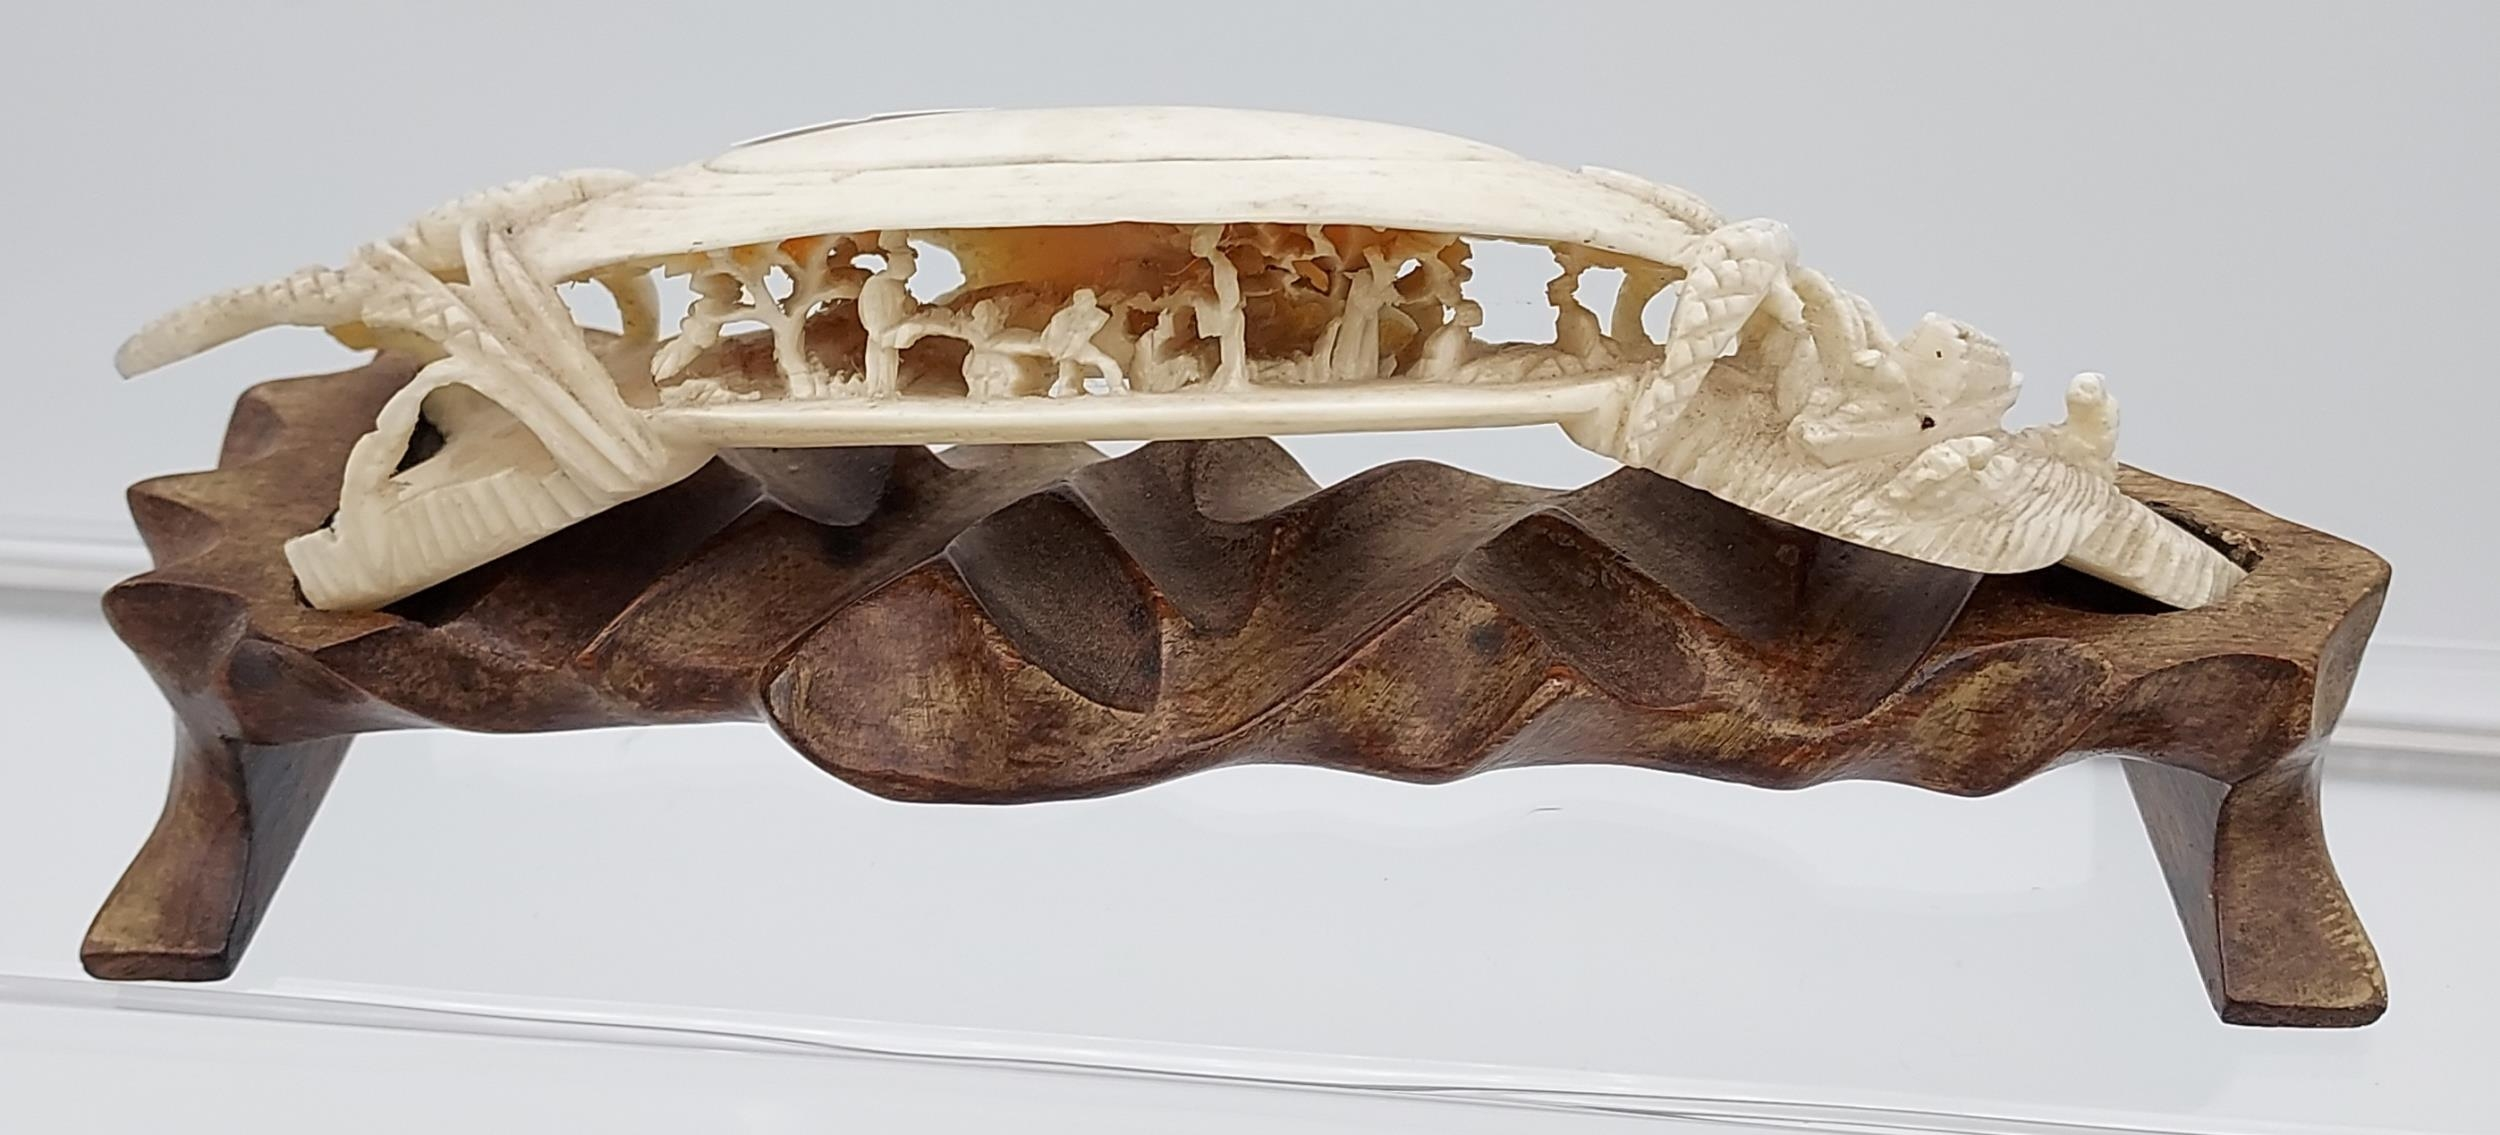 Antique Chinese hand carved ivory sculpture sat upon a carved wooden stand. [18cm in length]